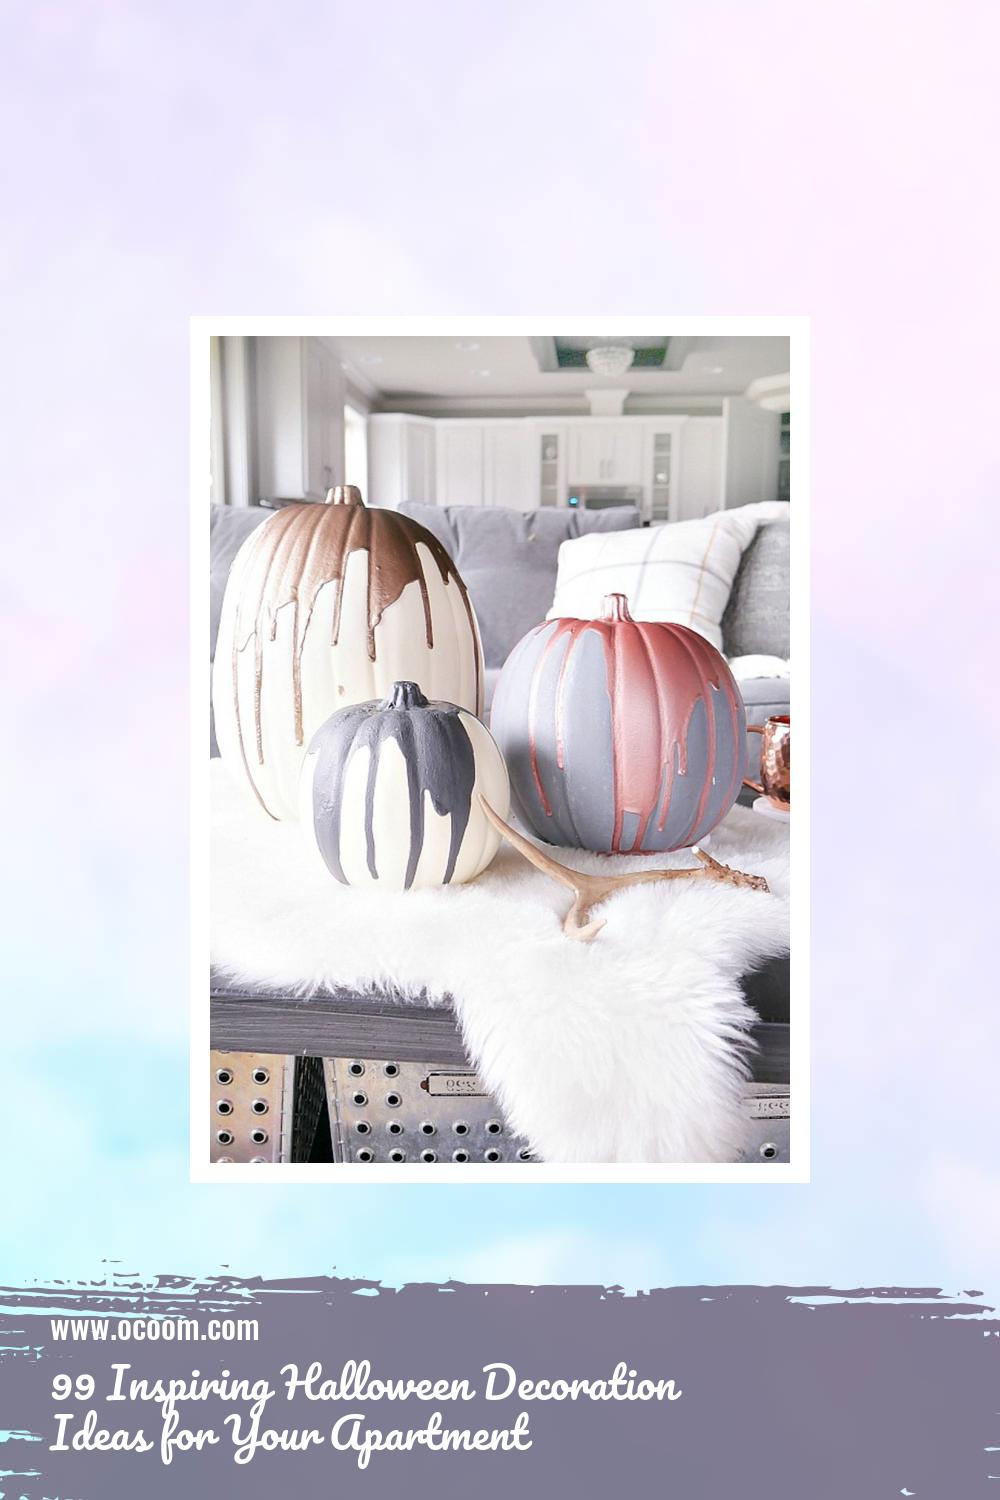 99 Inspiring Halloween Decoration Ideas for Your Apartment 10